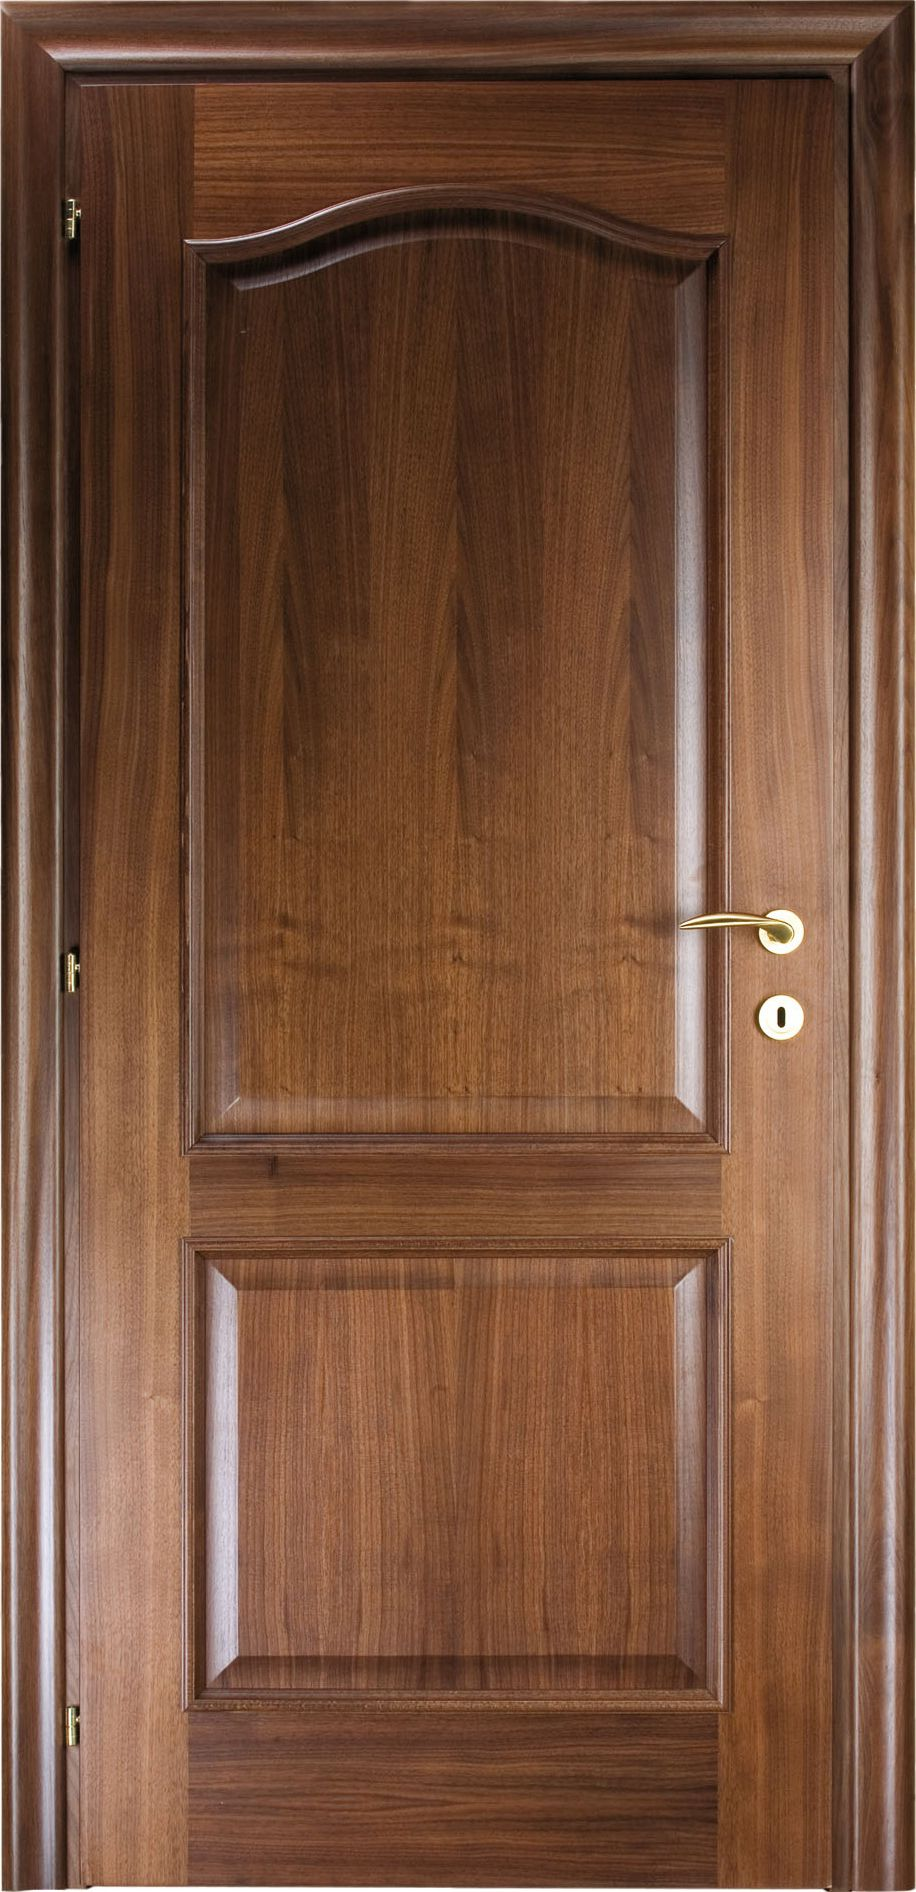 Luxury interior doors in classic antique baroque style for Hardwood doors